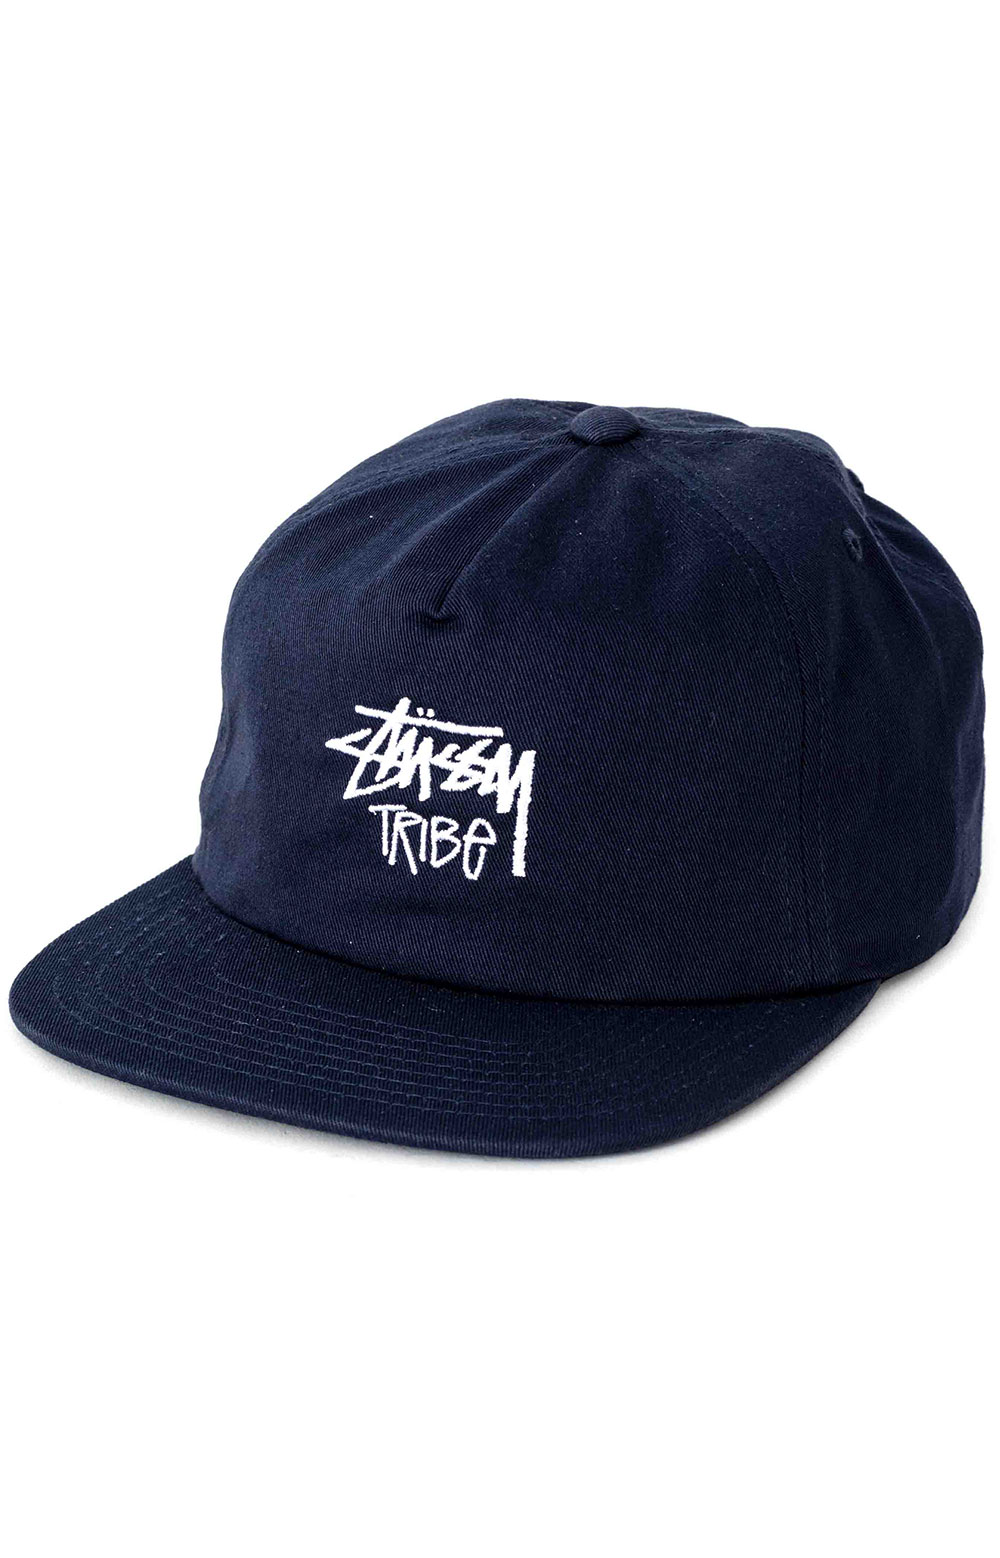 Tribe Snap-Back Hat - Navy